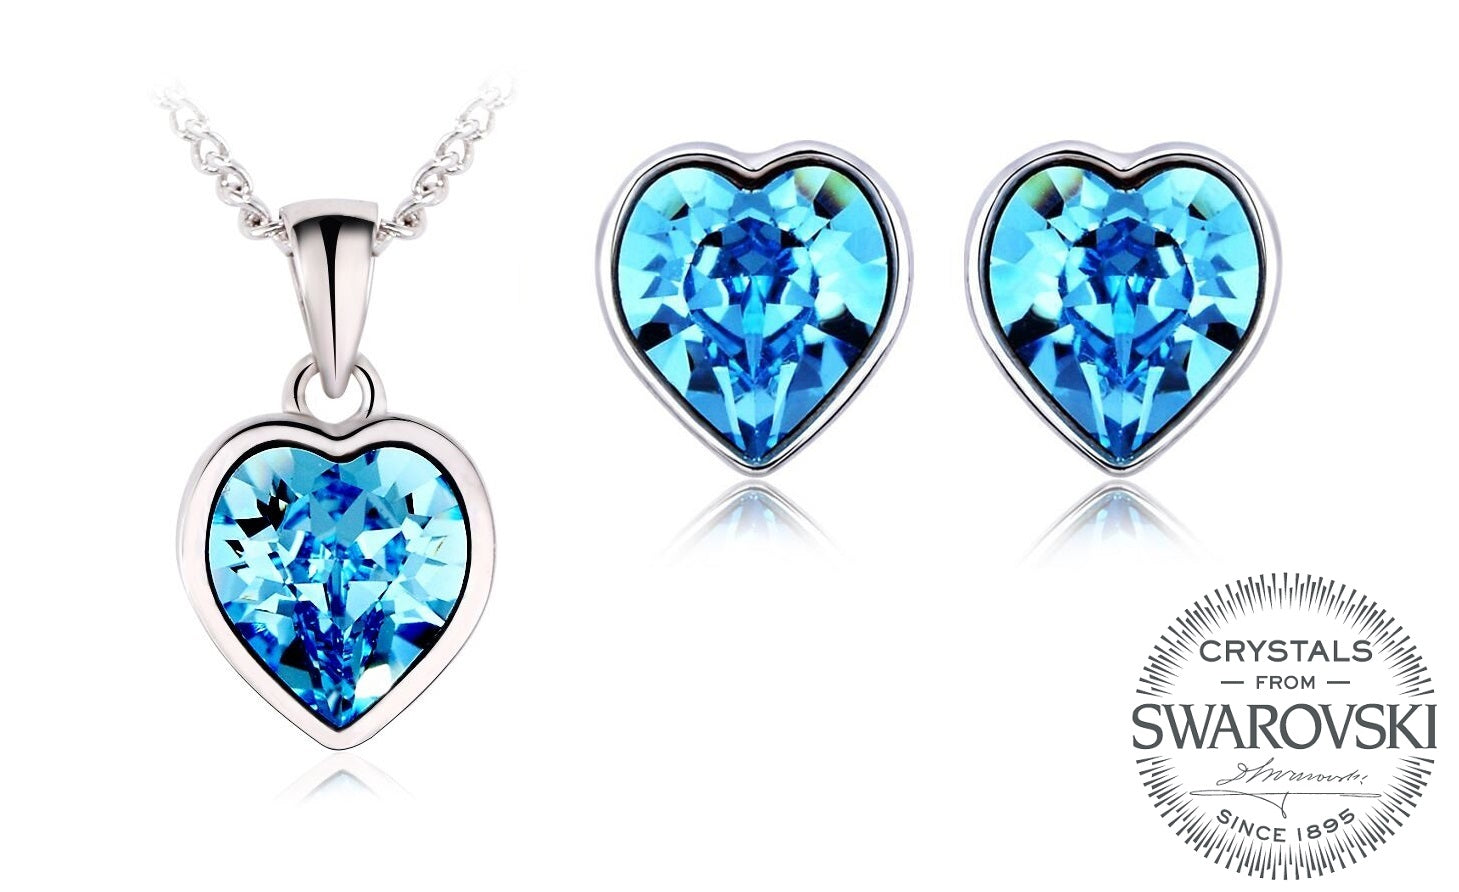 Light Blue Heart Necklace and Earrings with Crystals from Swarovski –  DhiaJewellery 3ae551dbd2